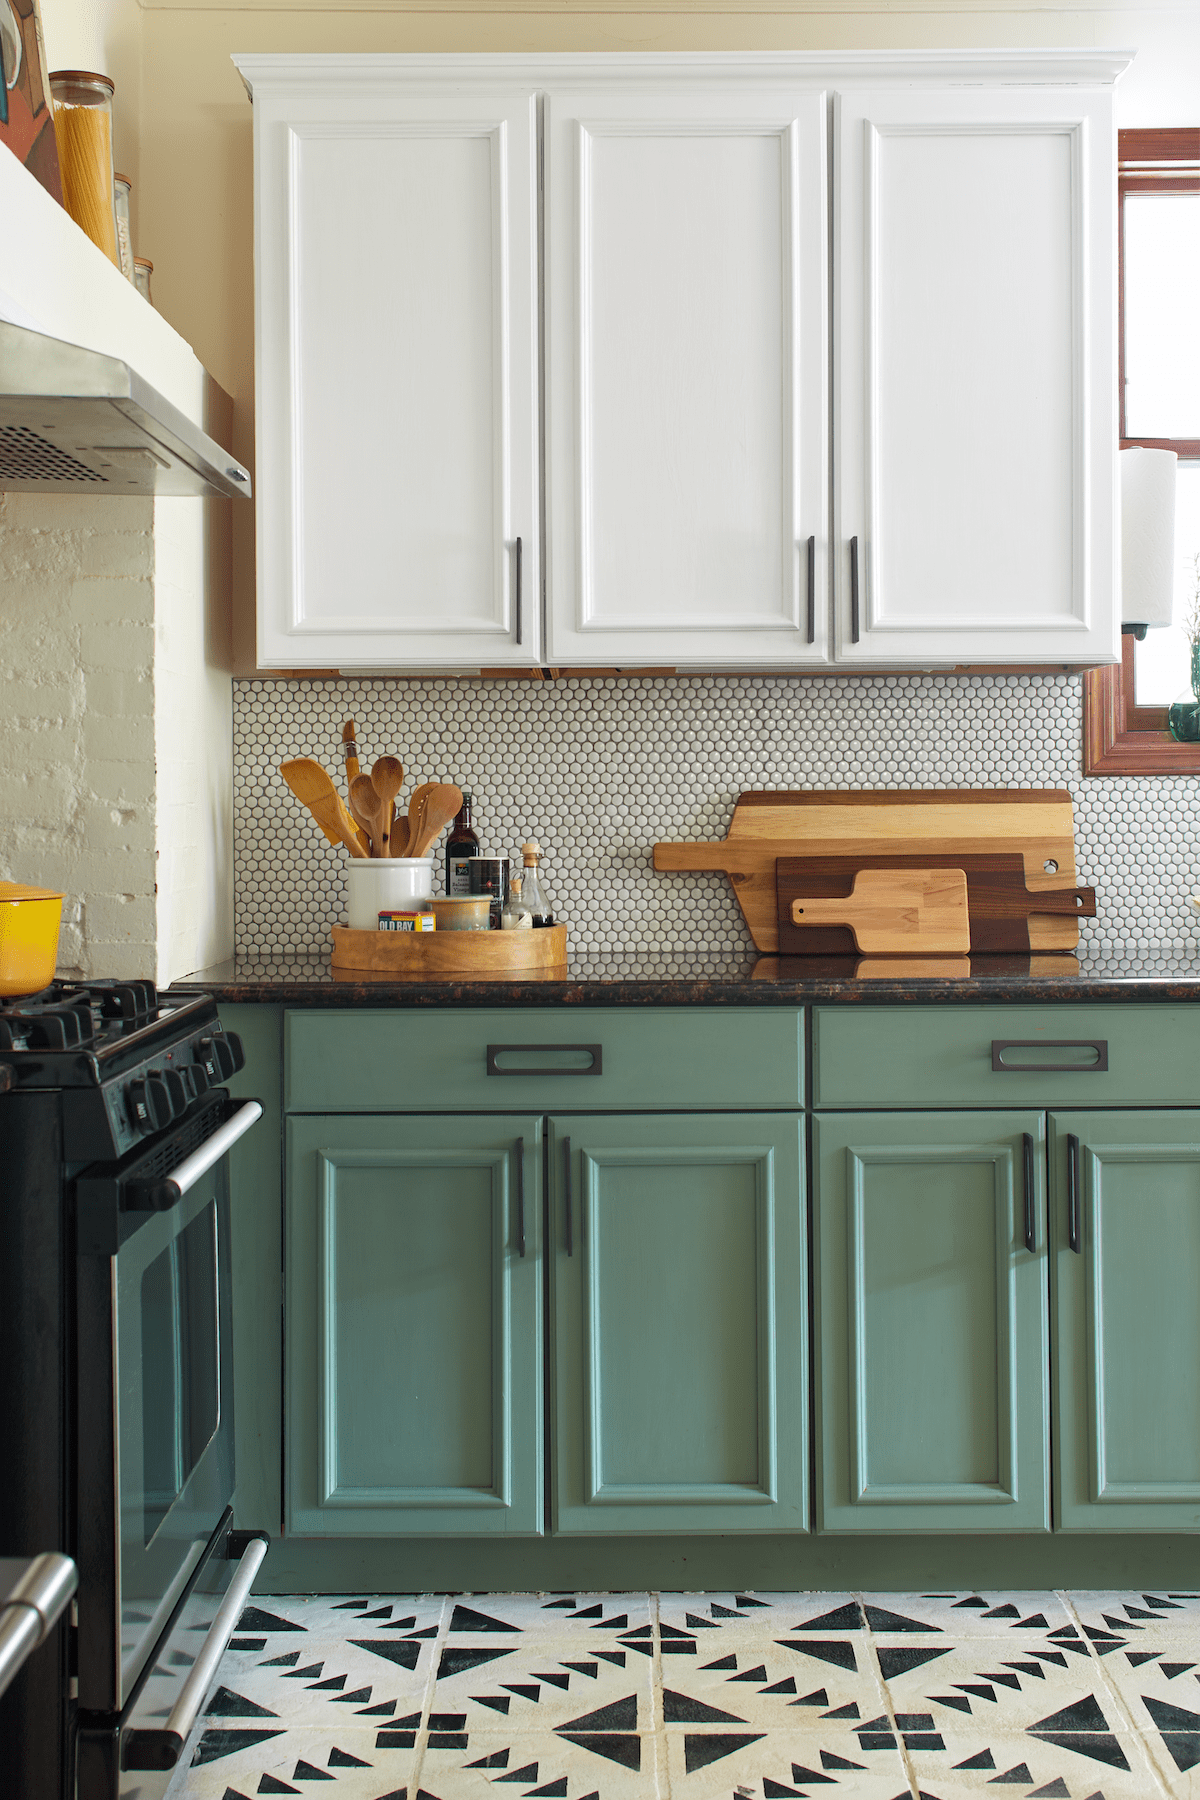 I Painted My Entire Kitchen with Chalk Paint | Kitchn on